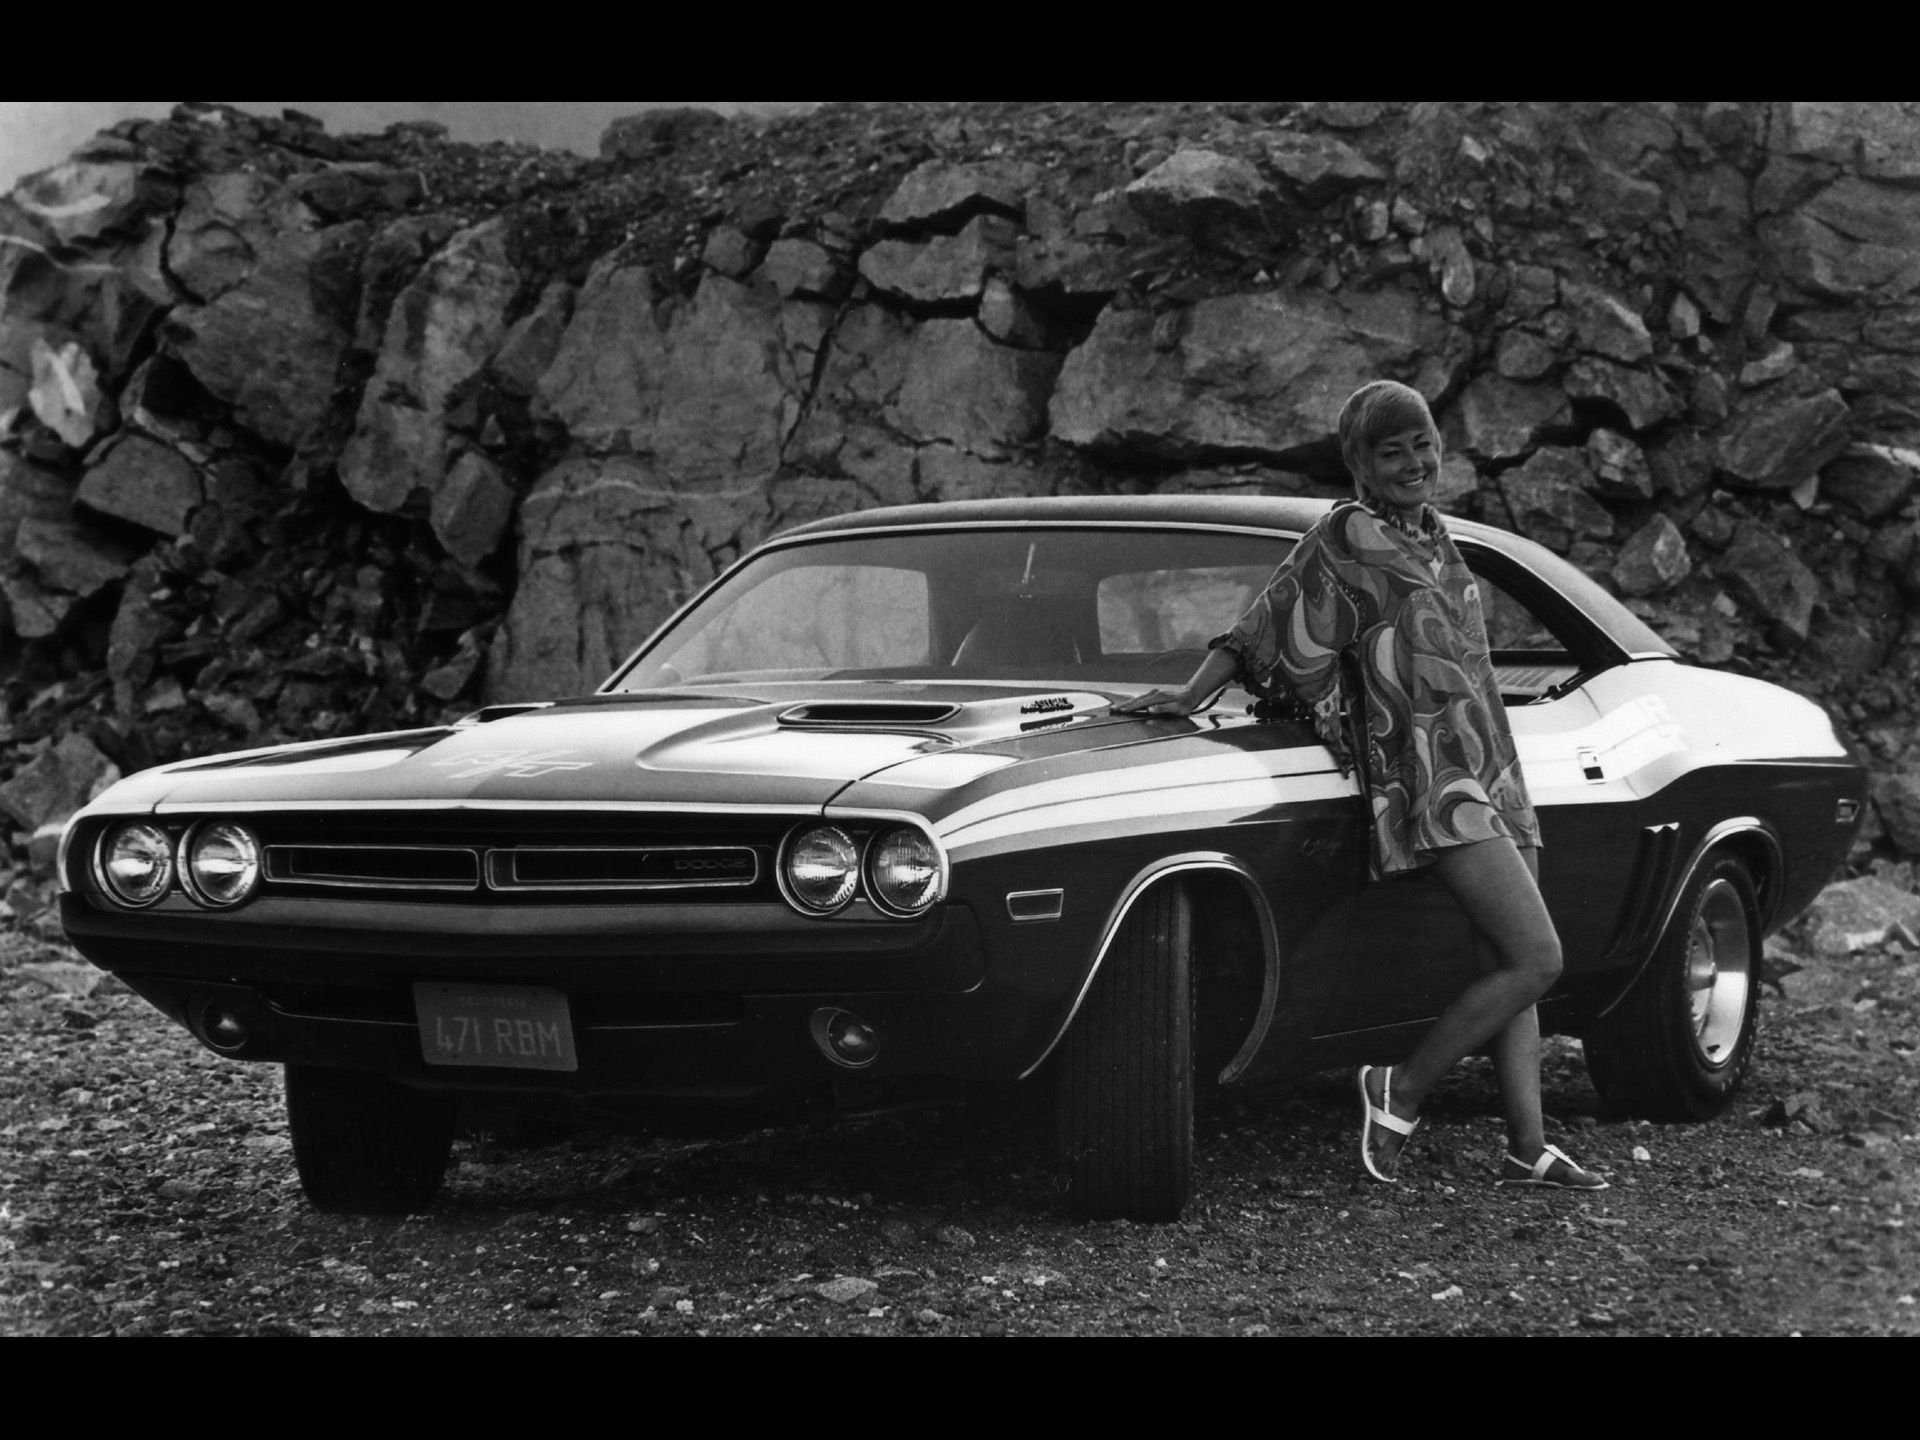 Classic Challenger Wallpapers Top Free Classic Challenger